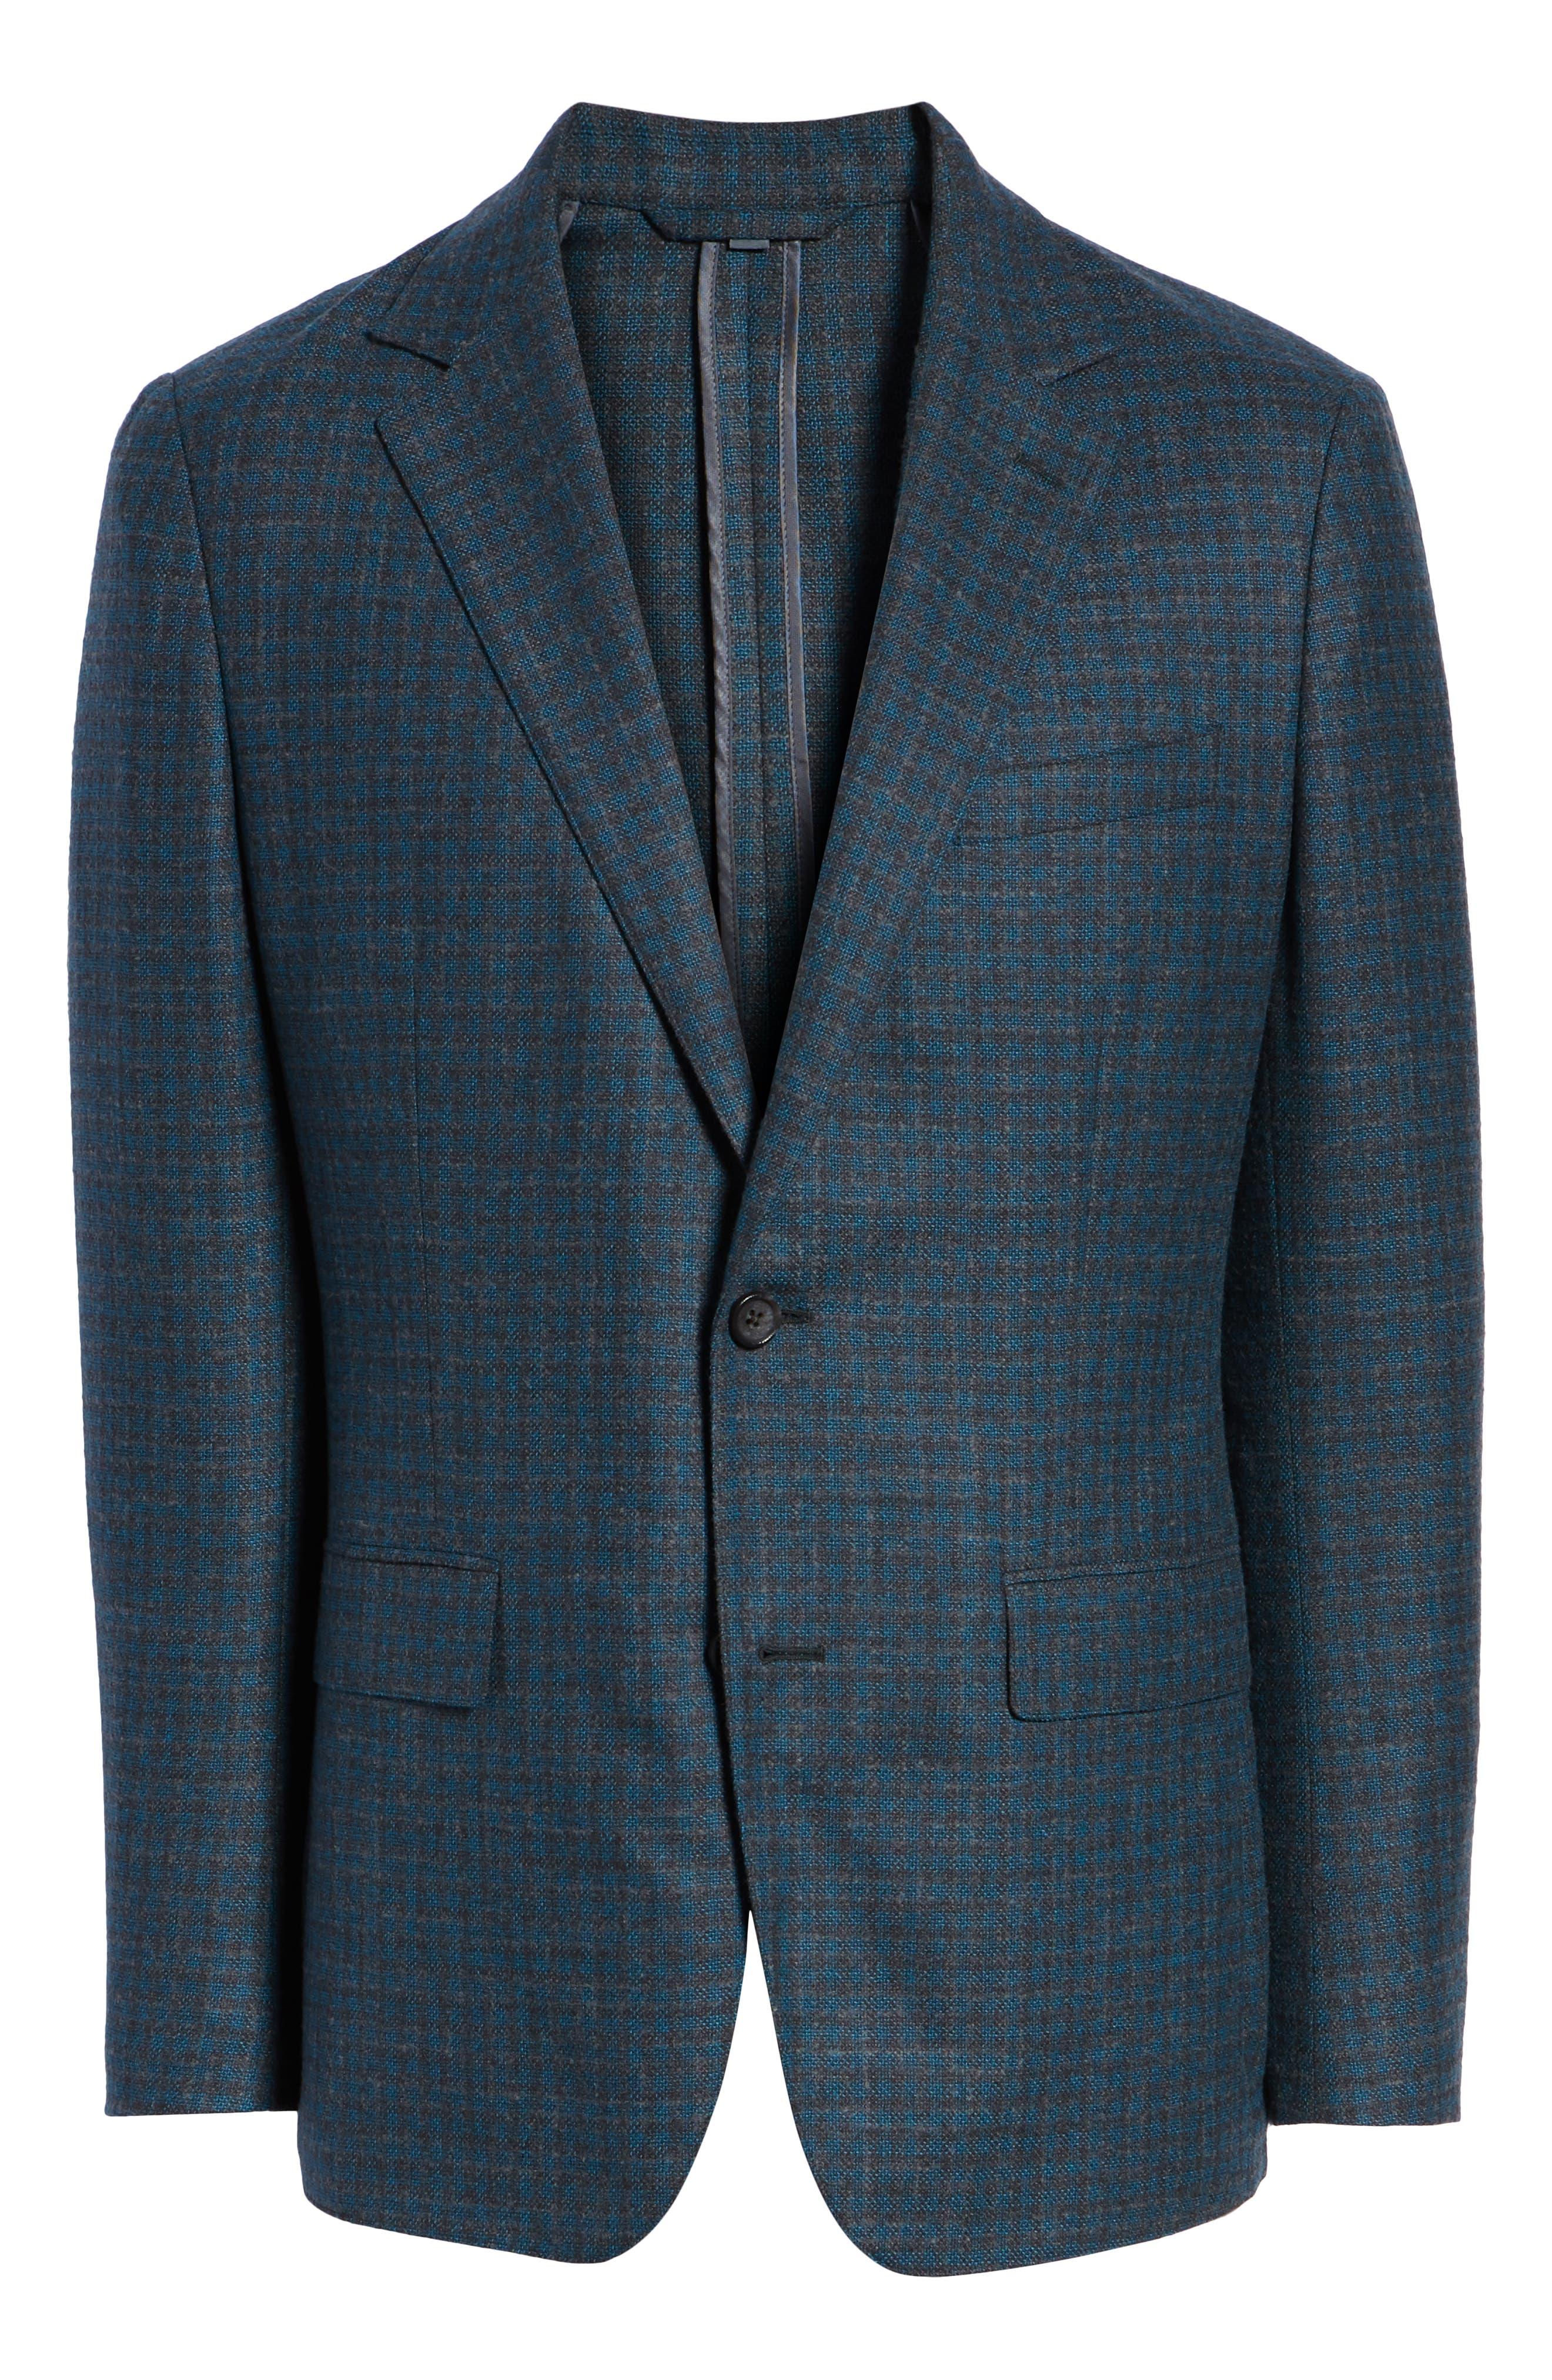 Jetsetter Slim Fit Unconstructed Blazer,                             Alternate thumbnail 5, color,                             TEAL AND GREY PLAID